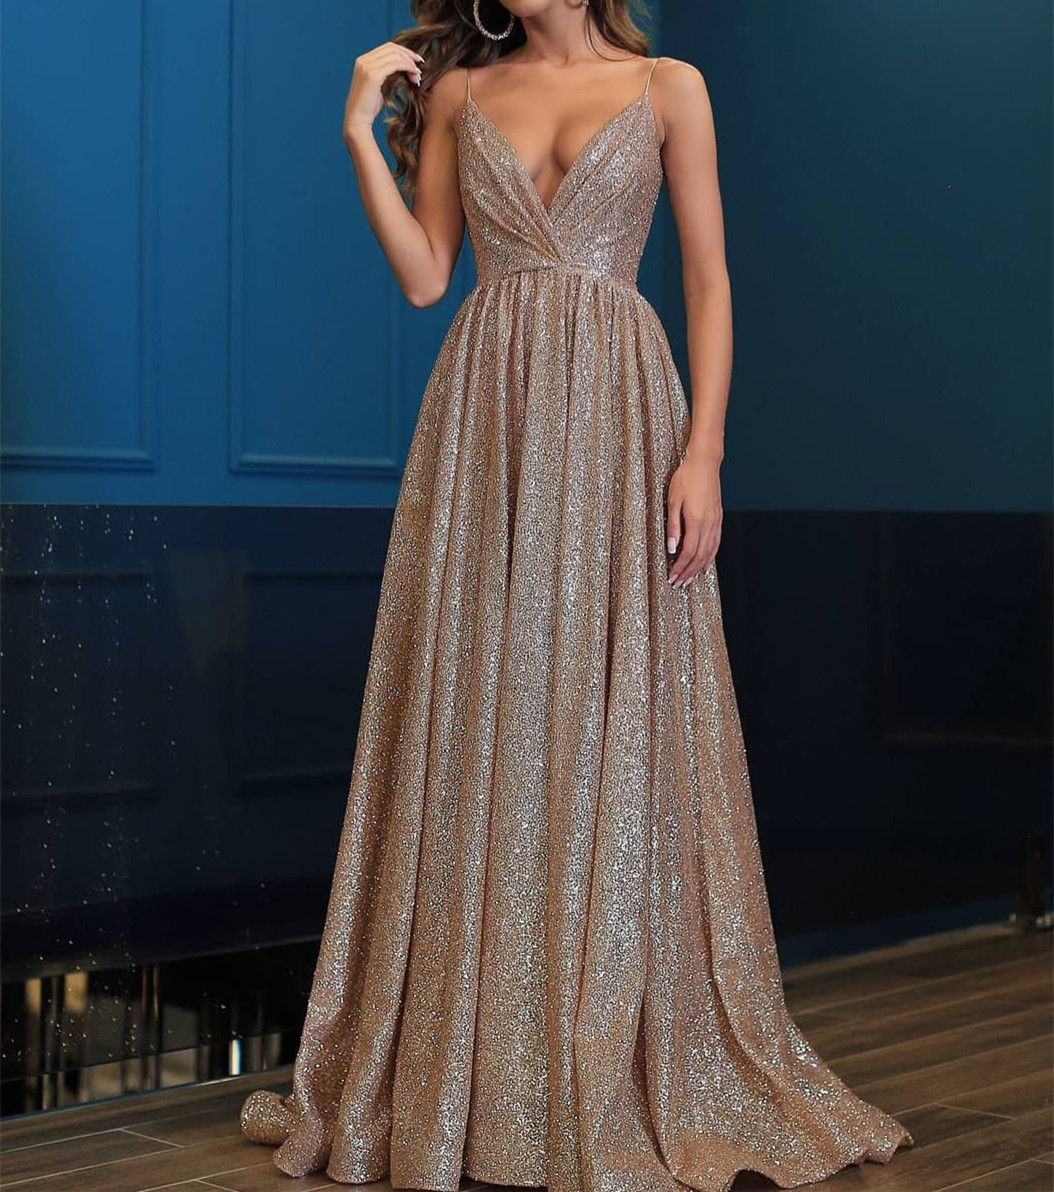 4 Myths about Sparkly Prom Dresses Debunked for a Glamorous Appearance